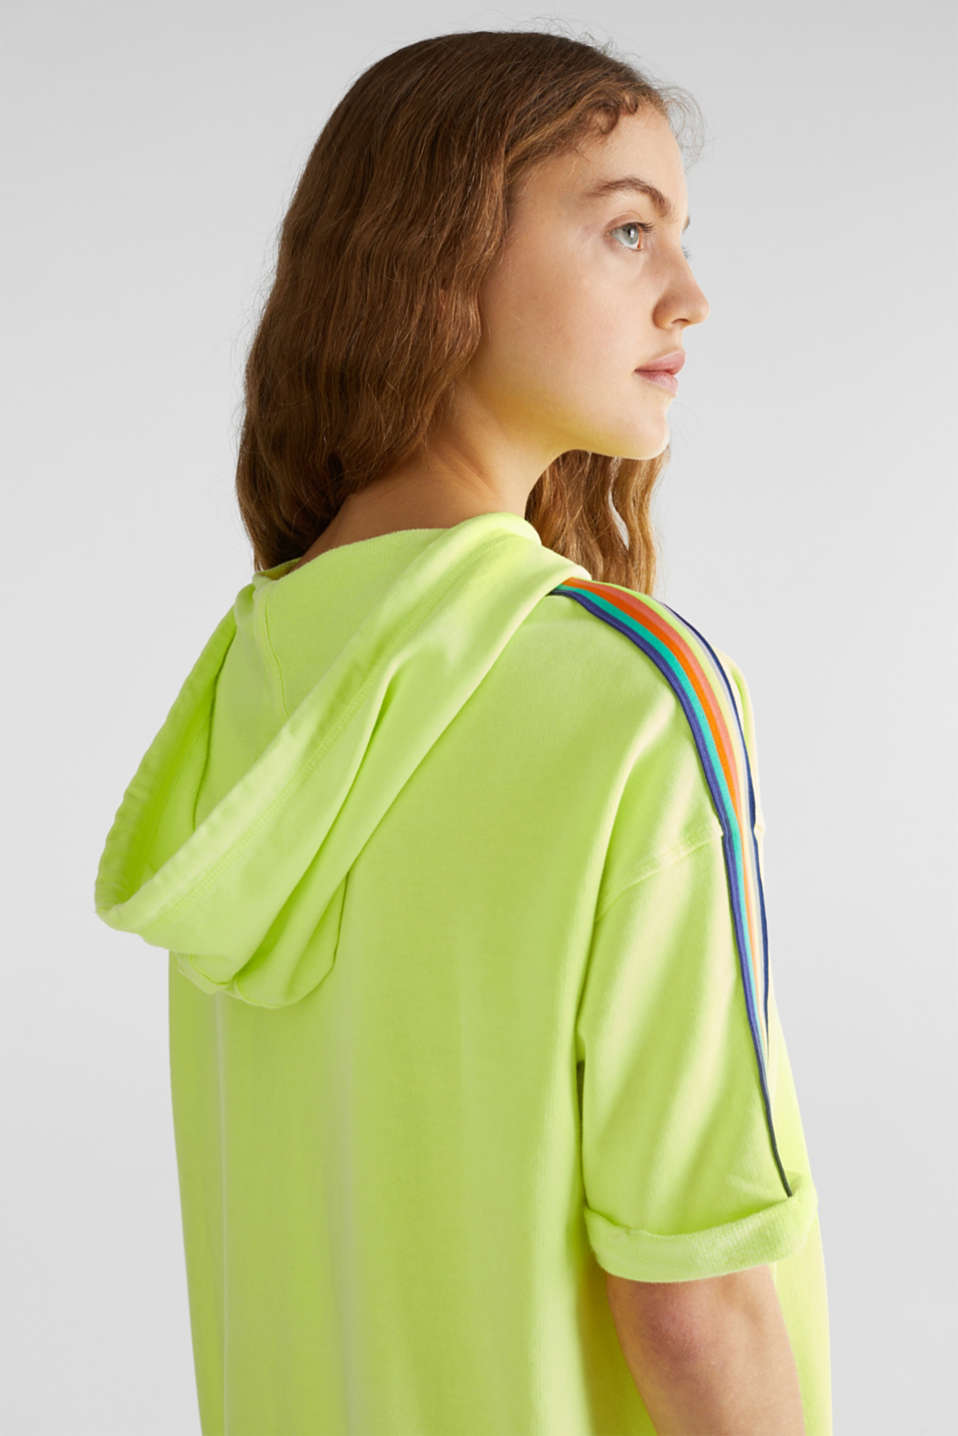 NEON sweatshirt dress with stripes, 100% cotton, LIME YELLOW, detail image number 5